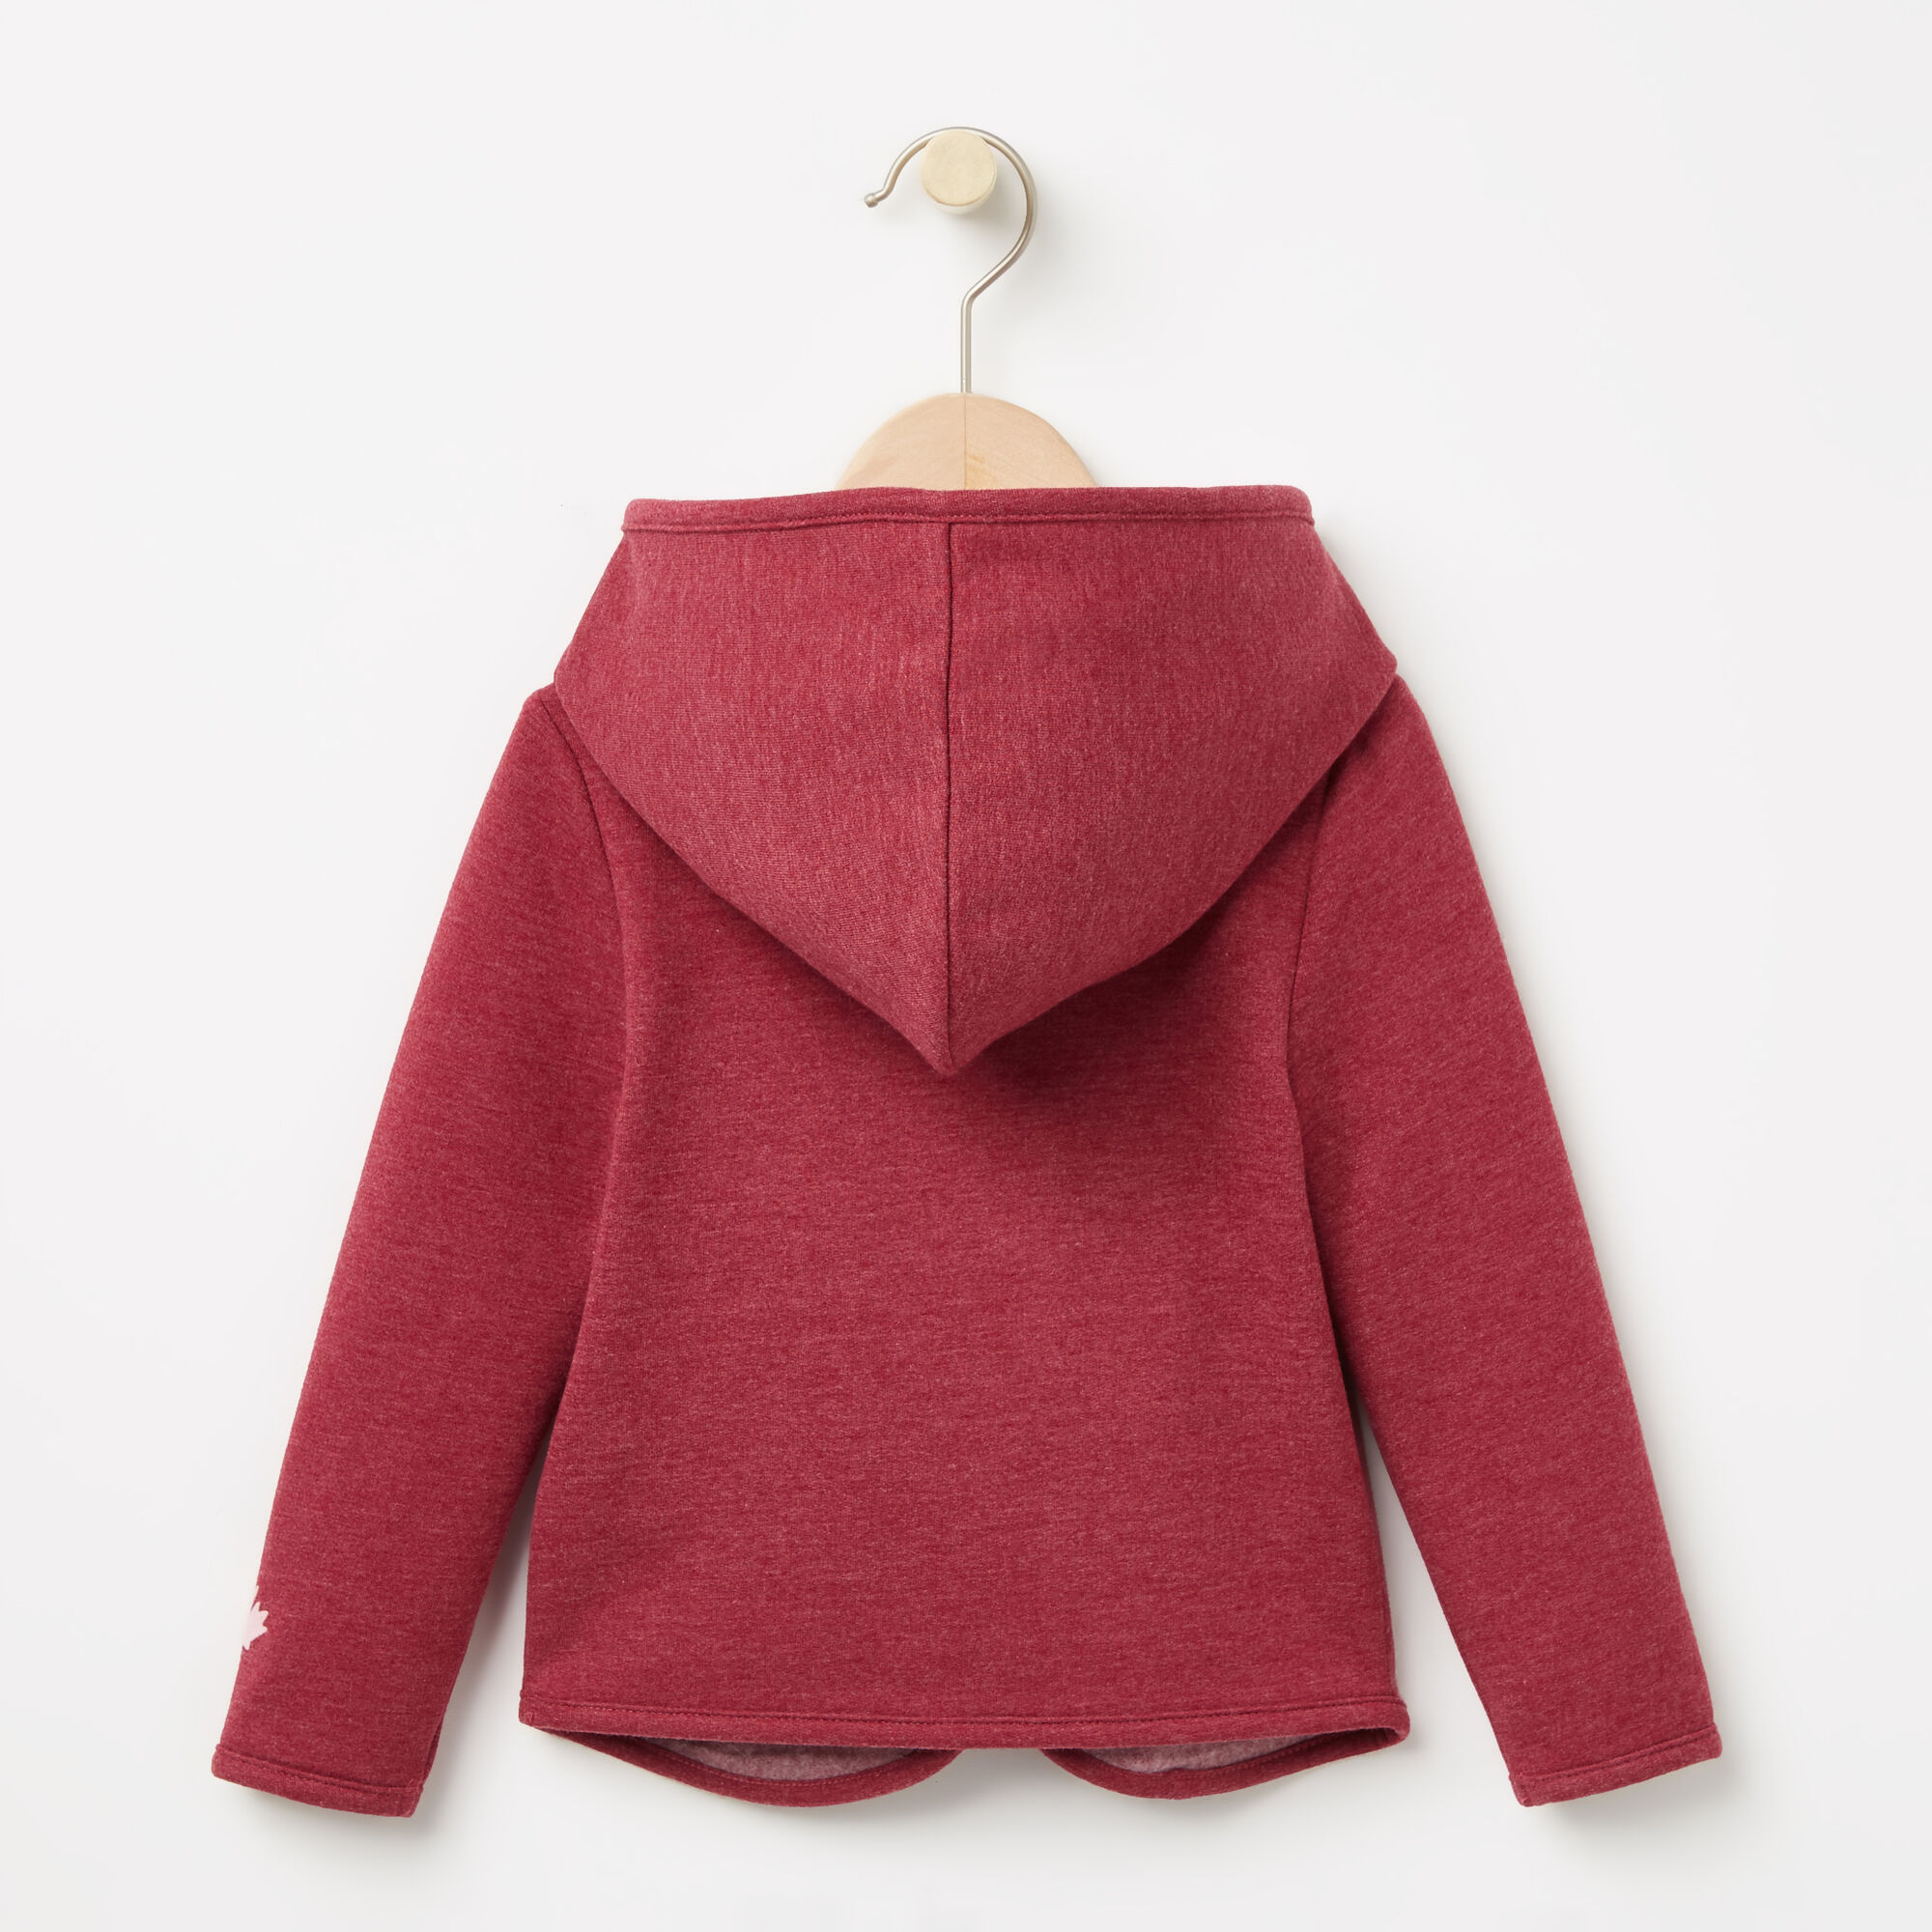 Toddler Laurier Cardigan